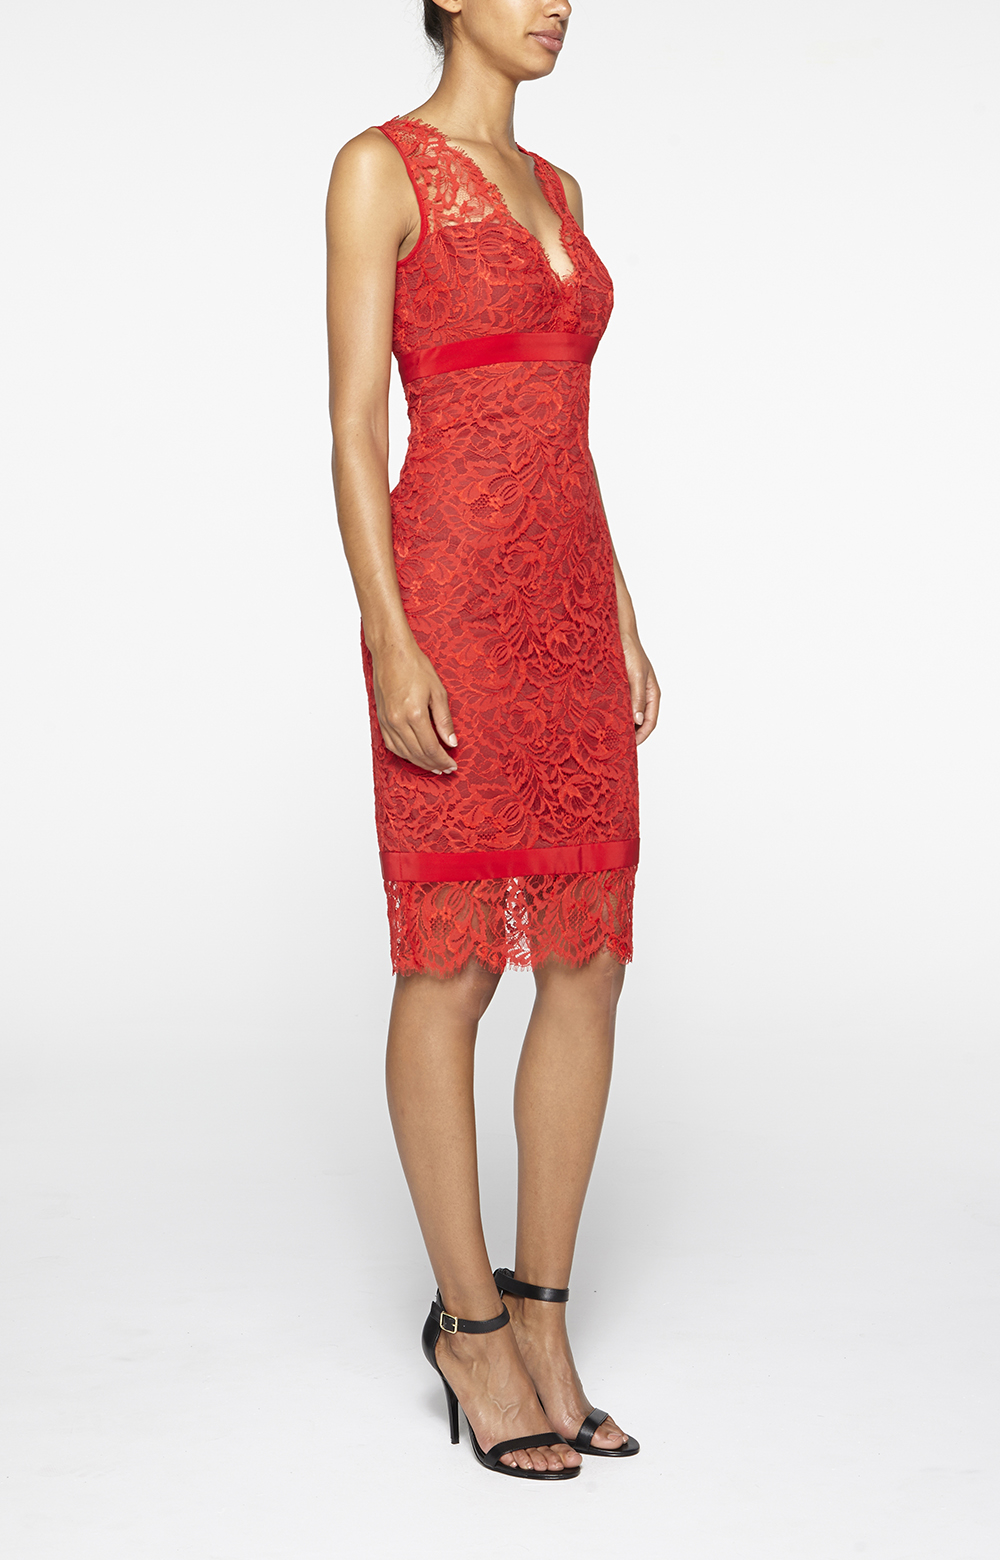 Nicole Miller Lace V Neck Dress In Red